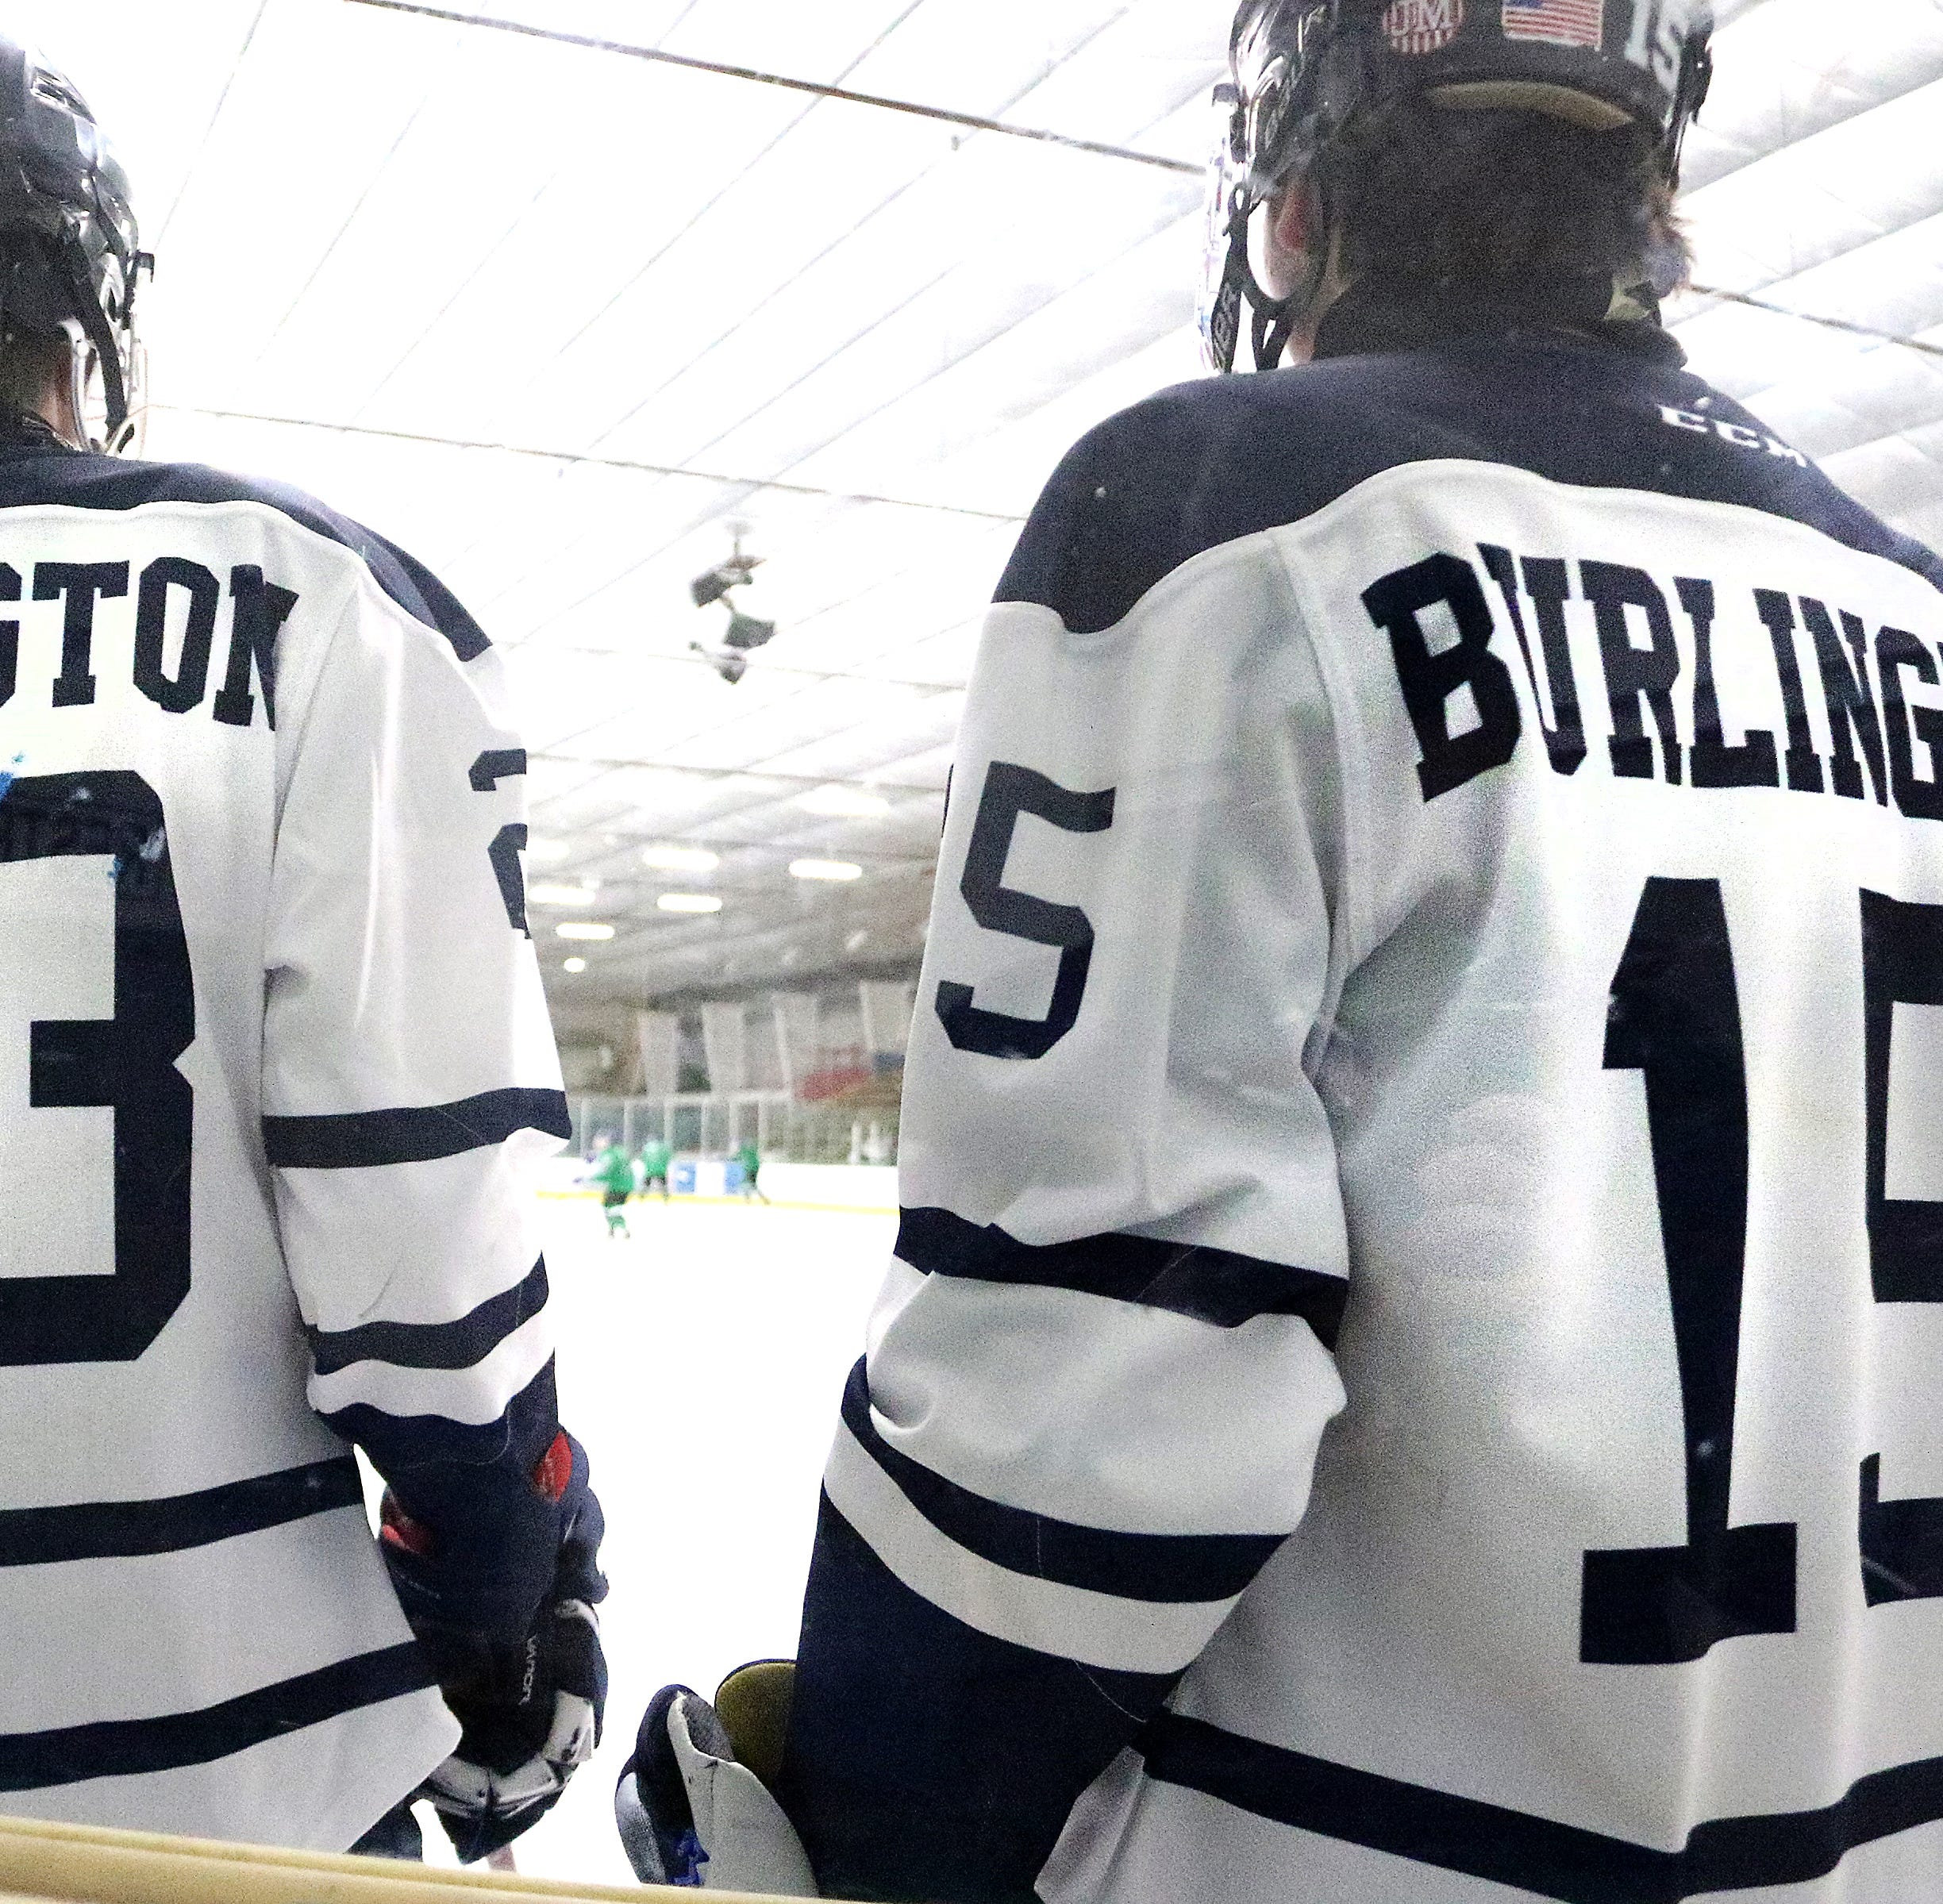 Monday's Vermont sports scores and Tuesday's schedule